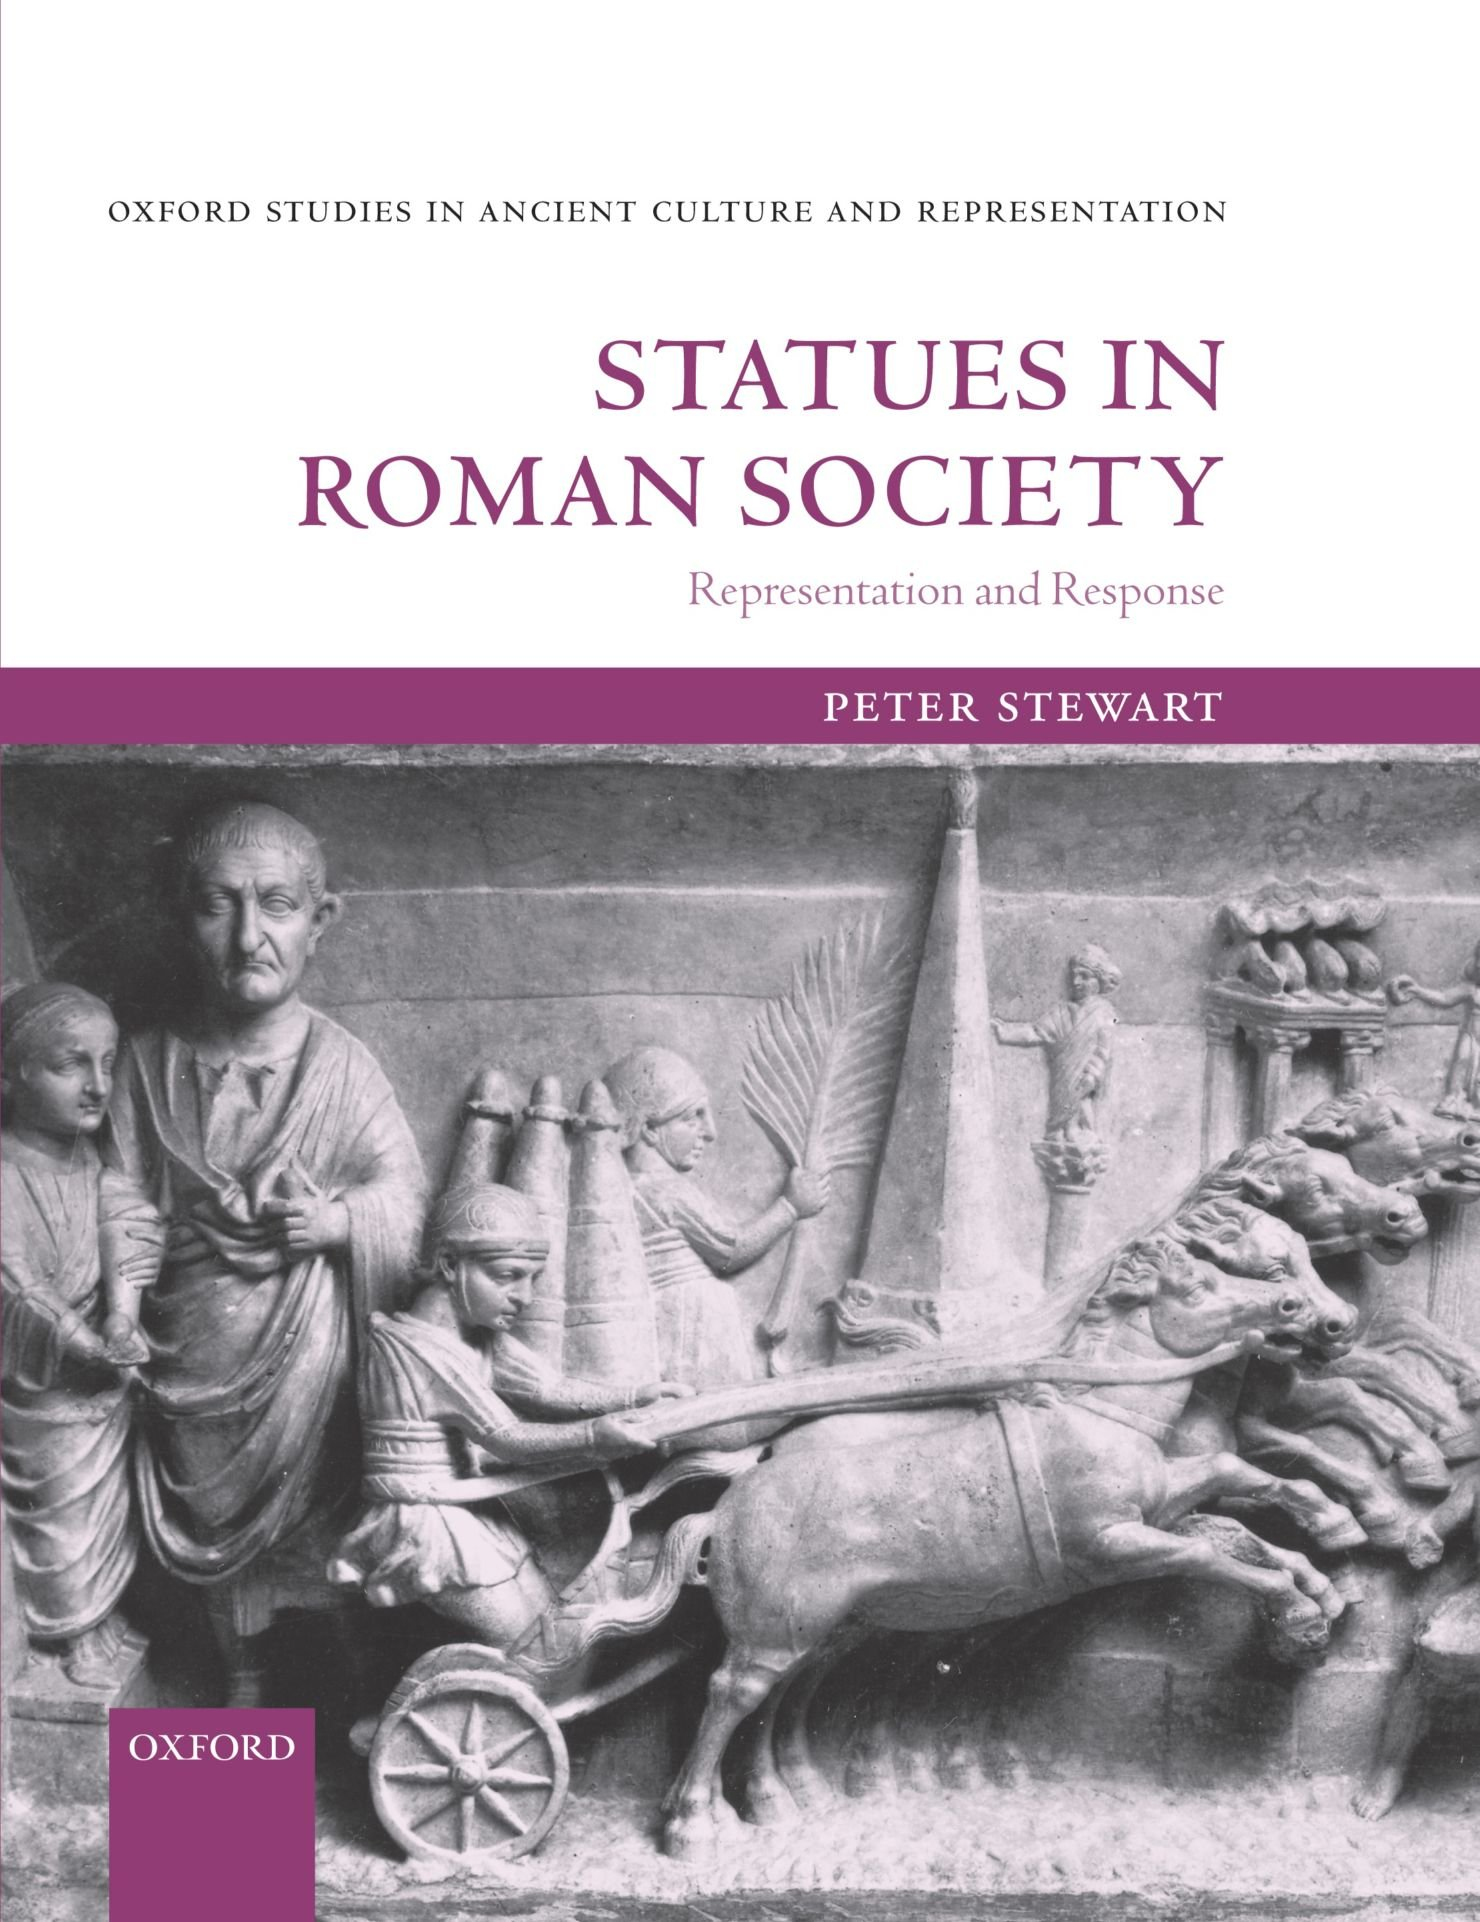 Statues in Roman Society: Representation and Response (Oxford Studies in Ancient Culture & Representation) by Oxford University Press